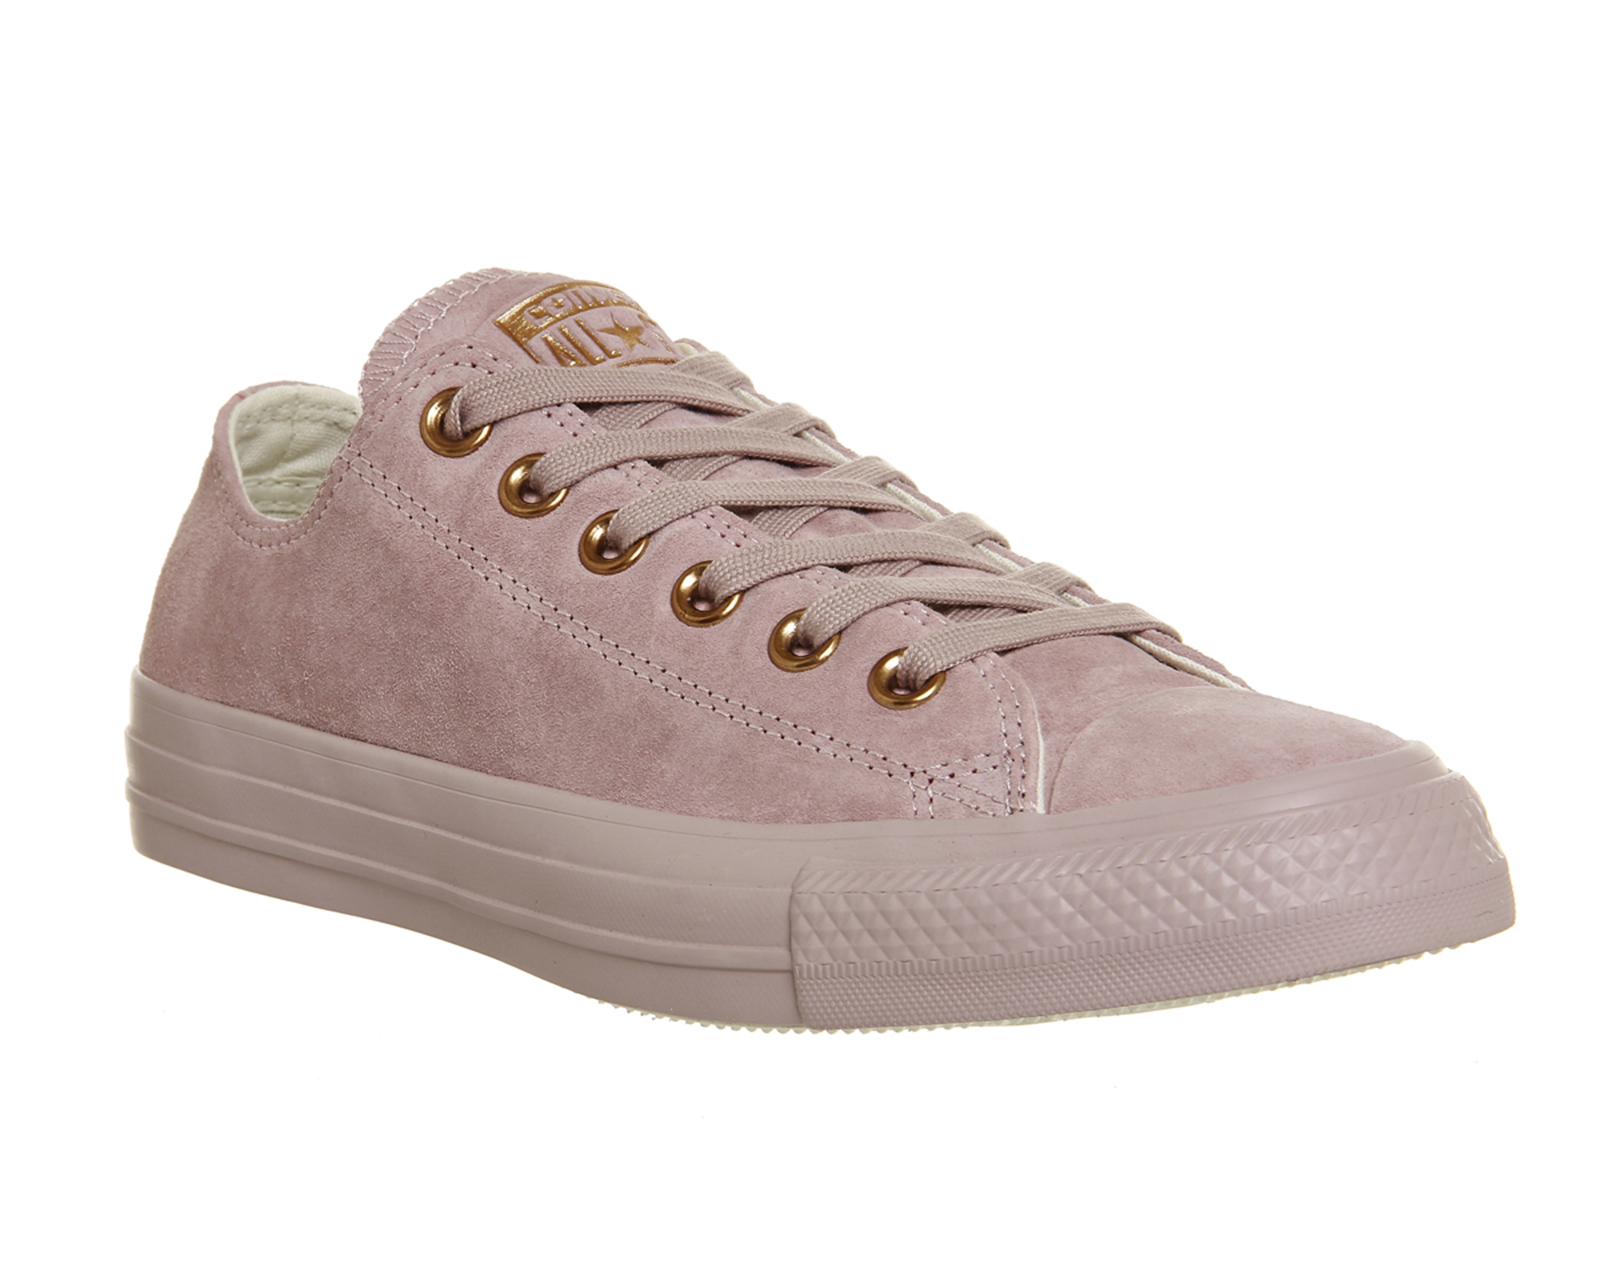 converse all star low leather burnished lilac rose gold exclusive trainers shoes ebay. Black Bedroom Furniture Sets. Home Design Ideas